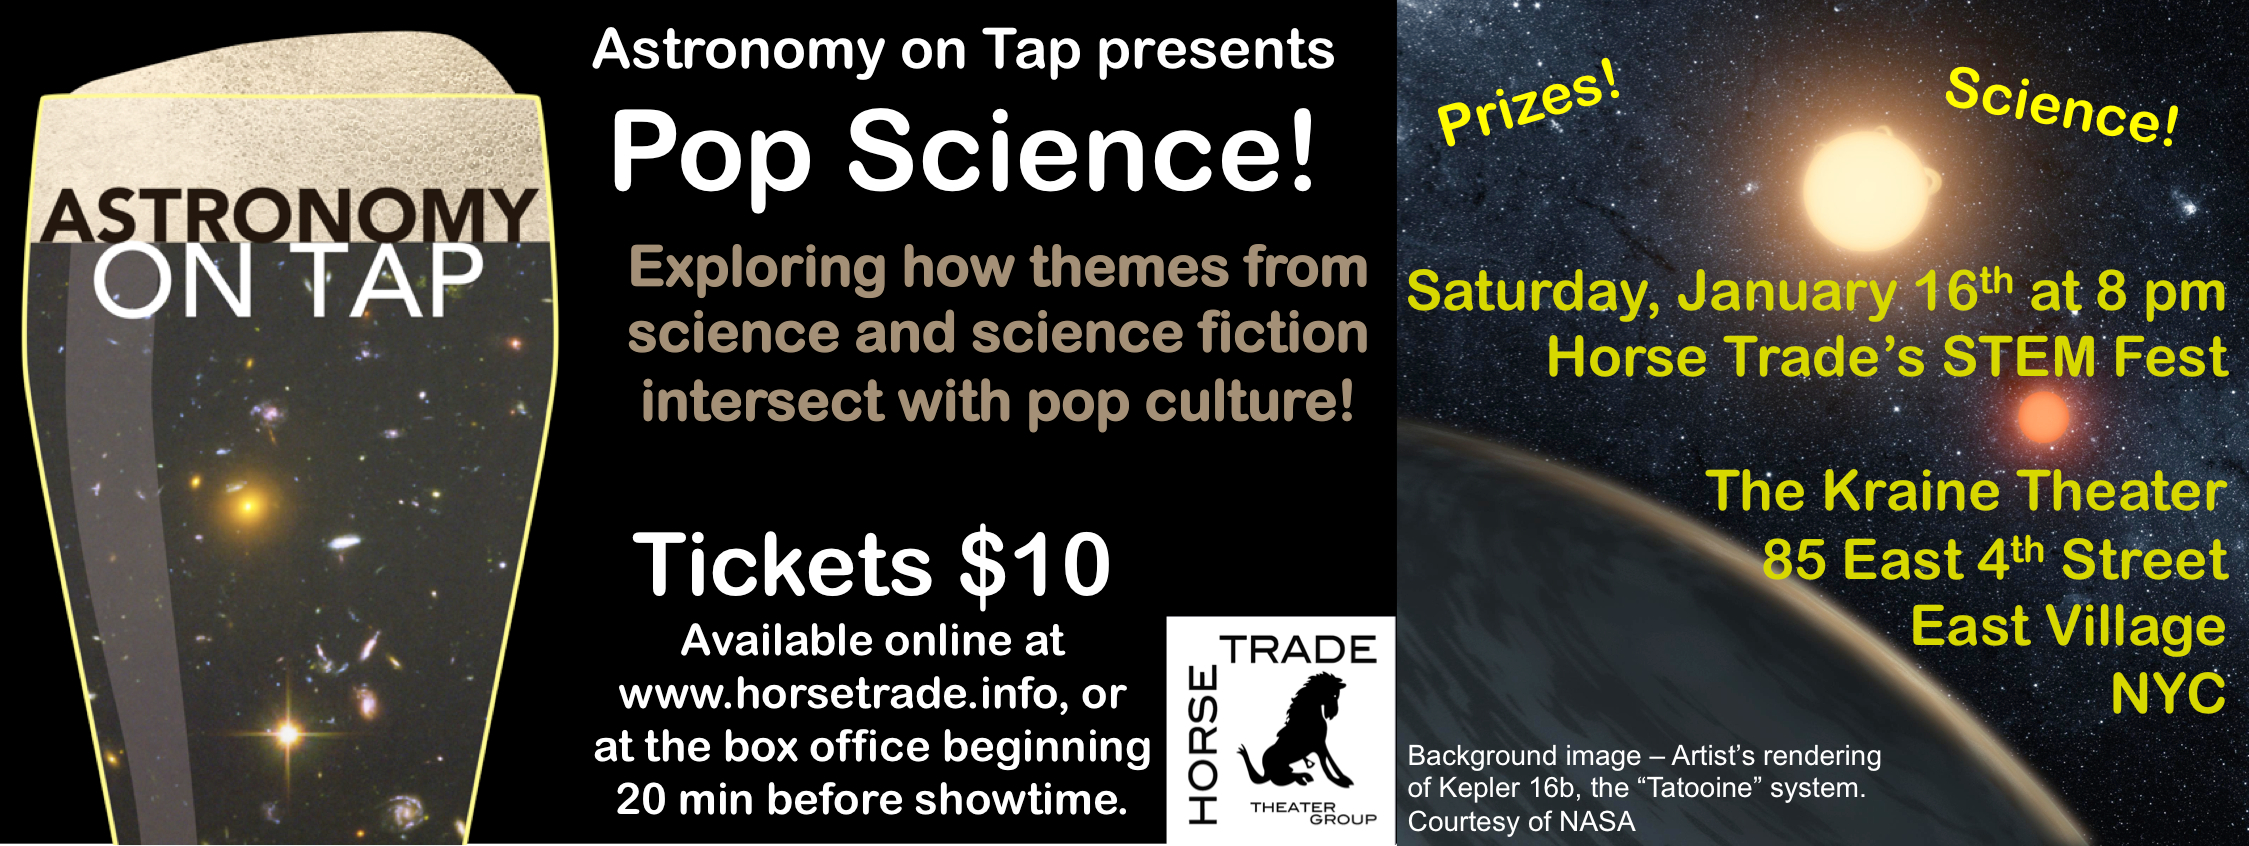 AoT NYC presents Pop Science! at STEMFest on January 16 at 8 pm